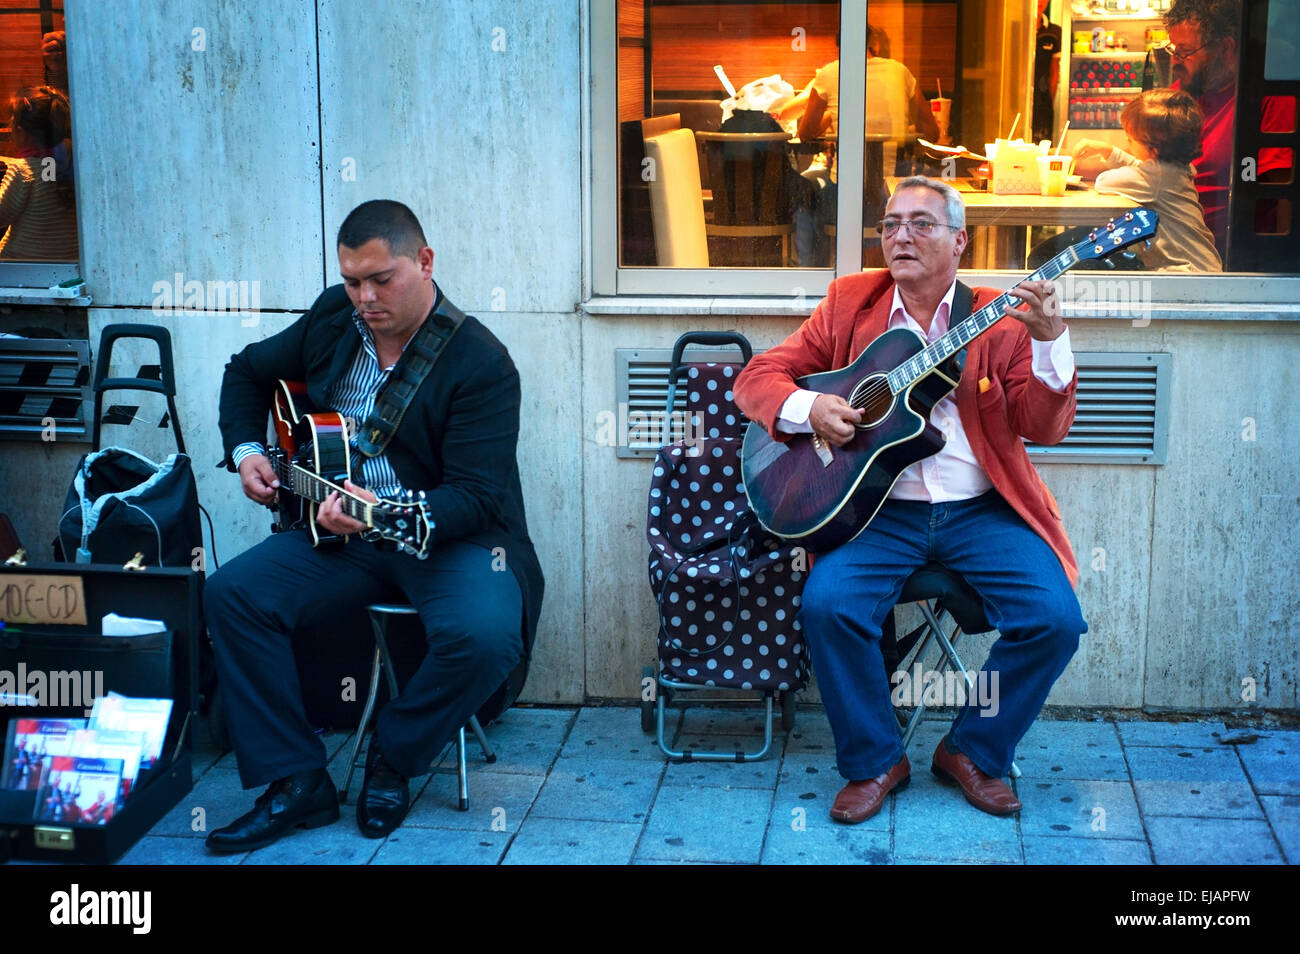 Old mcdonalds stock photos old mcdonalds stock images page 3 alamy street musicians stock image malvernweather Image collections